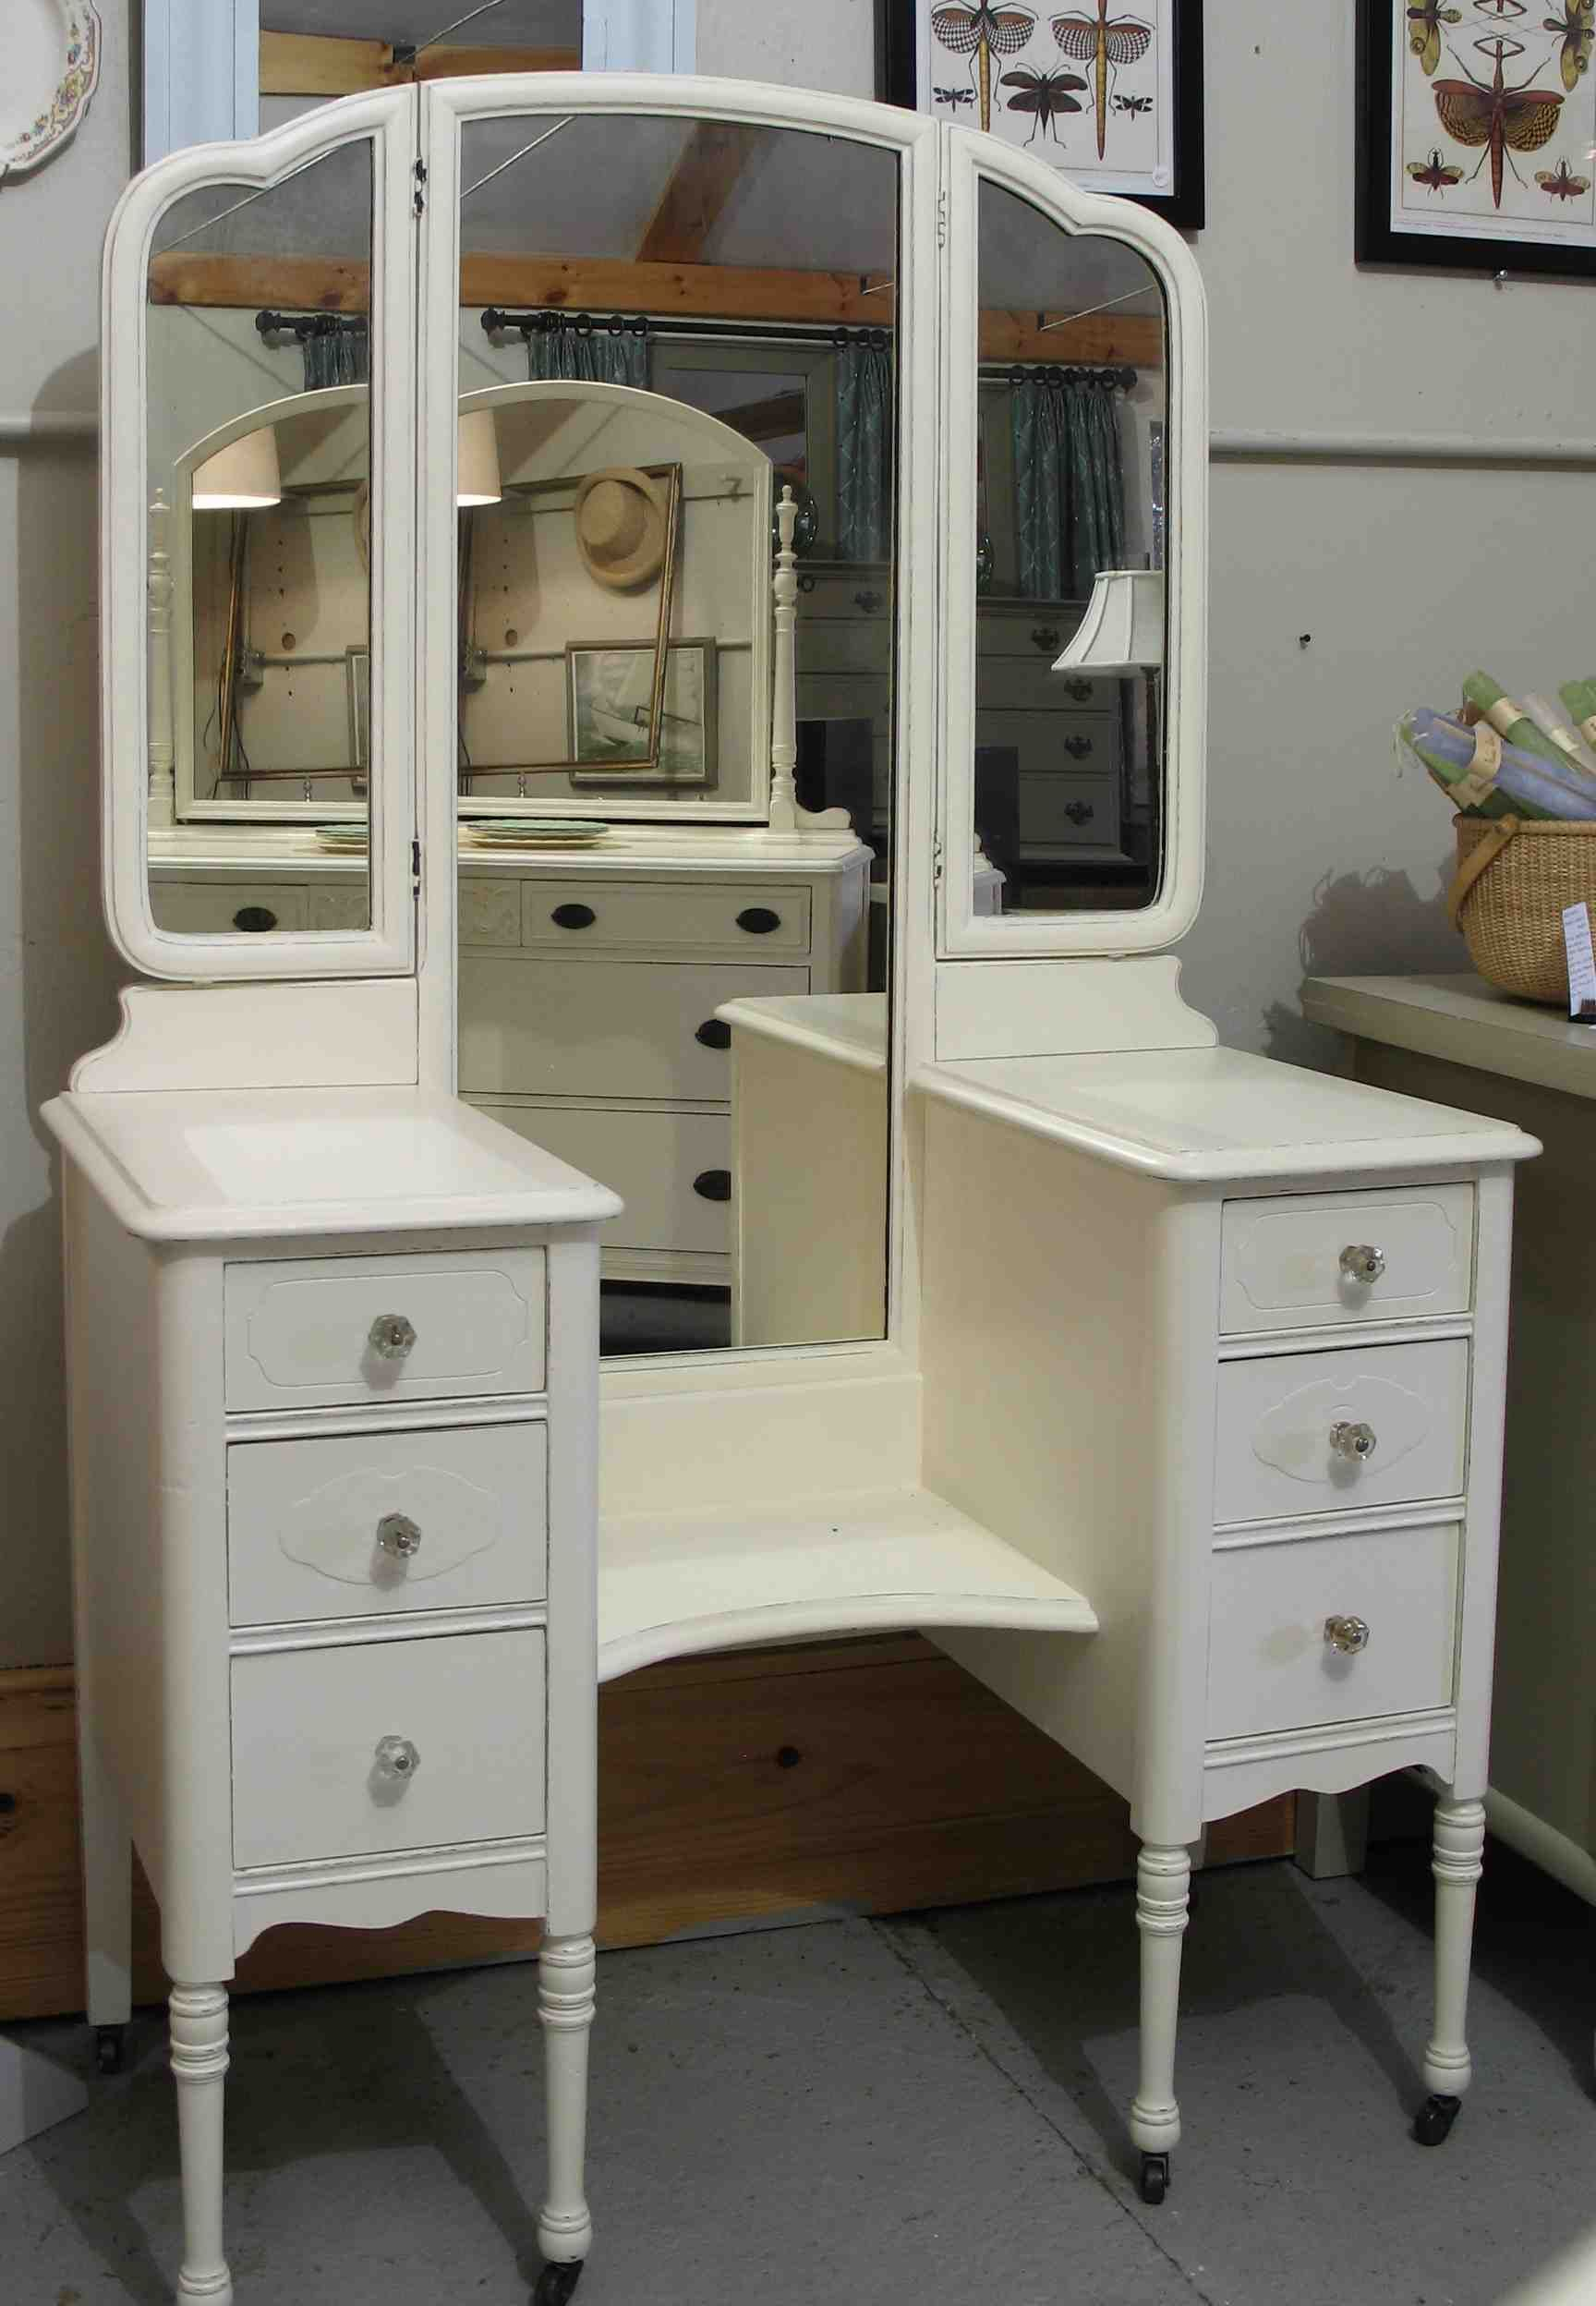 Dressing table designs with full length mirror for girls - Drop Well Vanity Used As A Dressing Table Painted Cottage White With Glass Knobs And Tri Fold Mirror The Two Side Mirrors Fold In For Different Angles